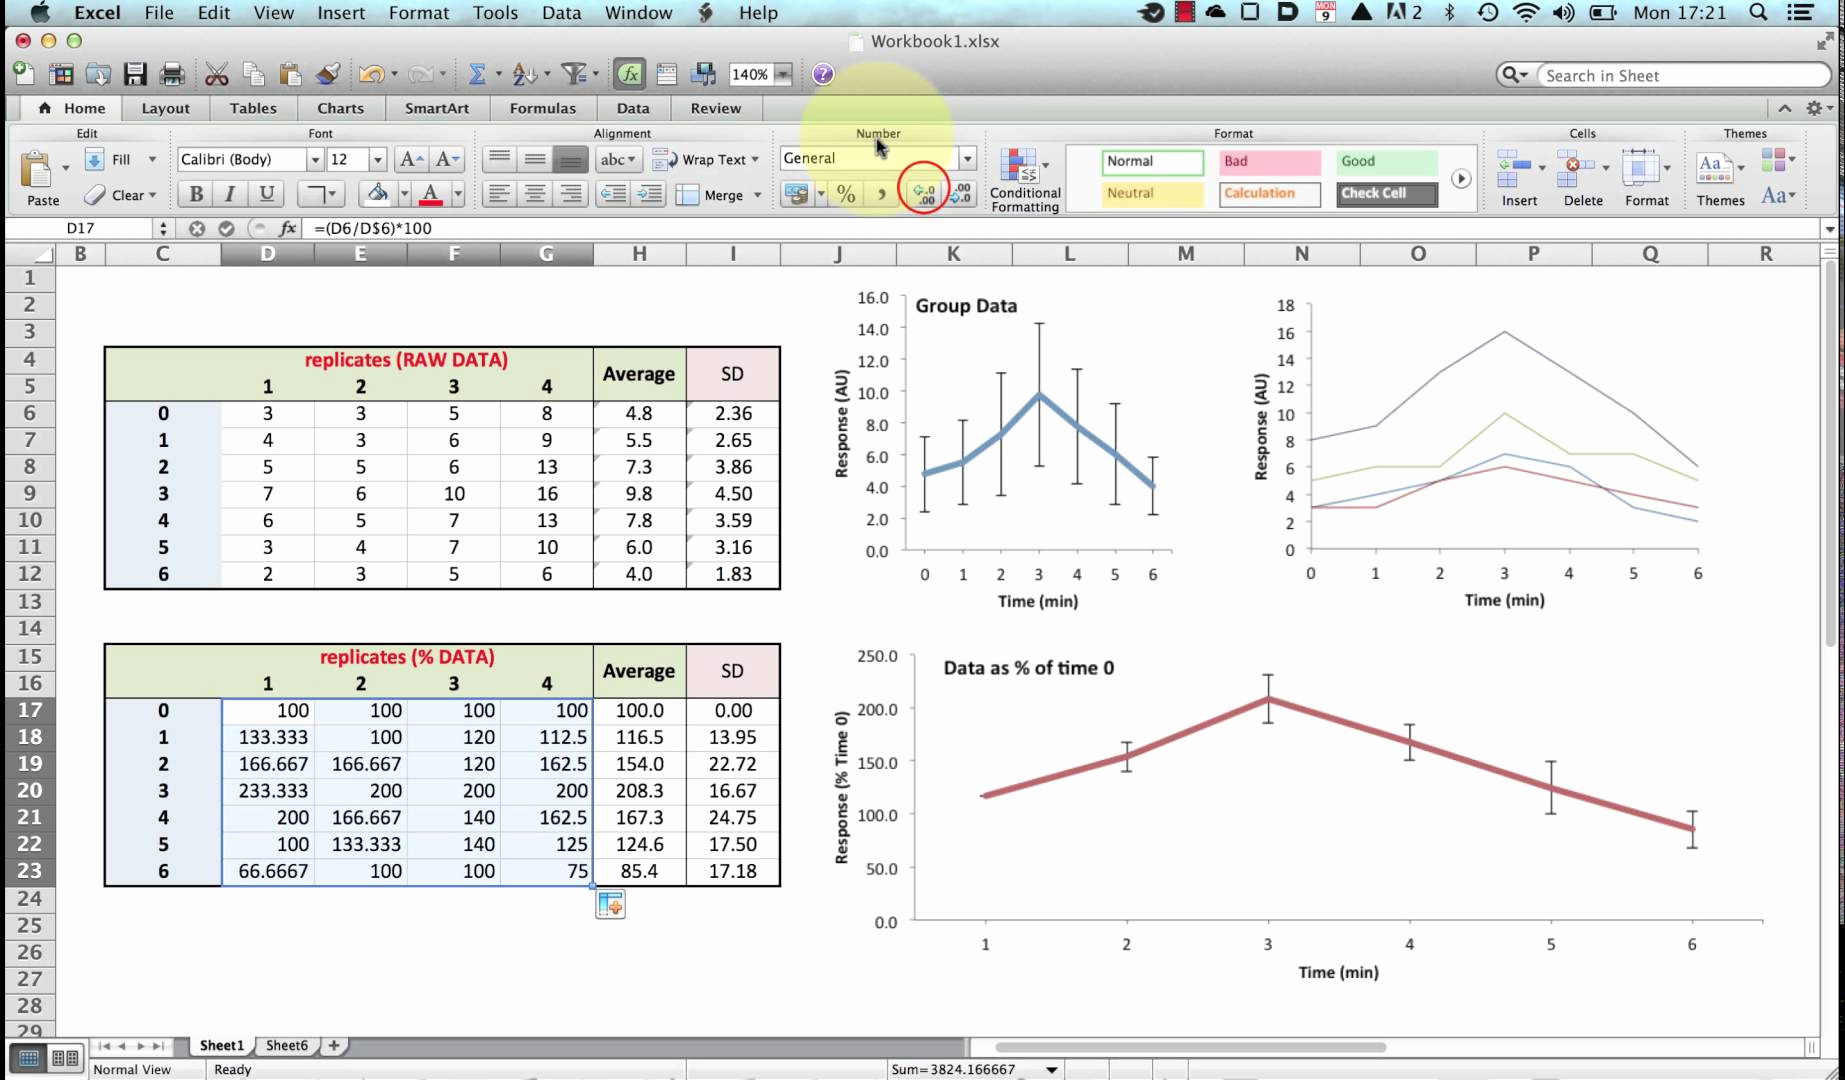 Microsoft Excel Spreadsheet Help In Microsoft Excel Spreadsheet Instructions 2018 How To Create An Excel